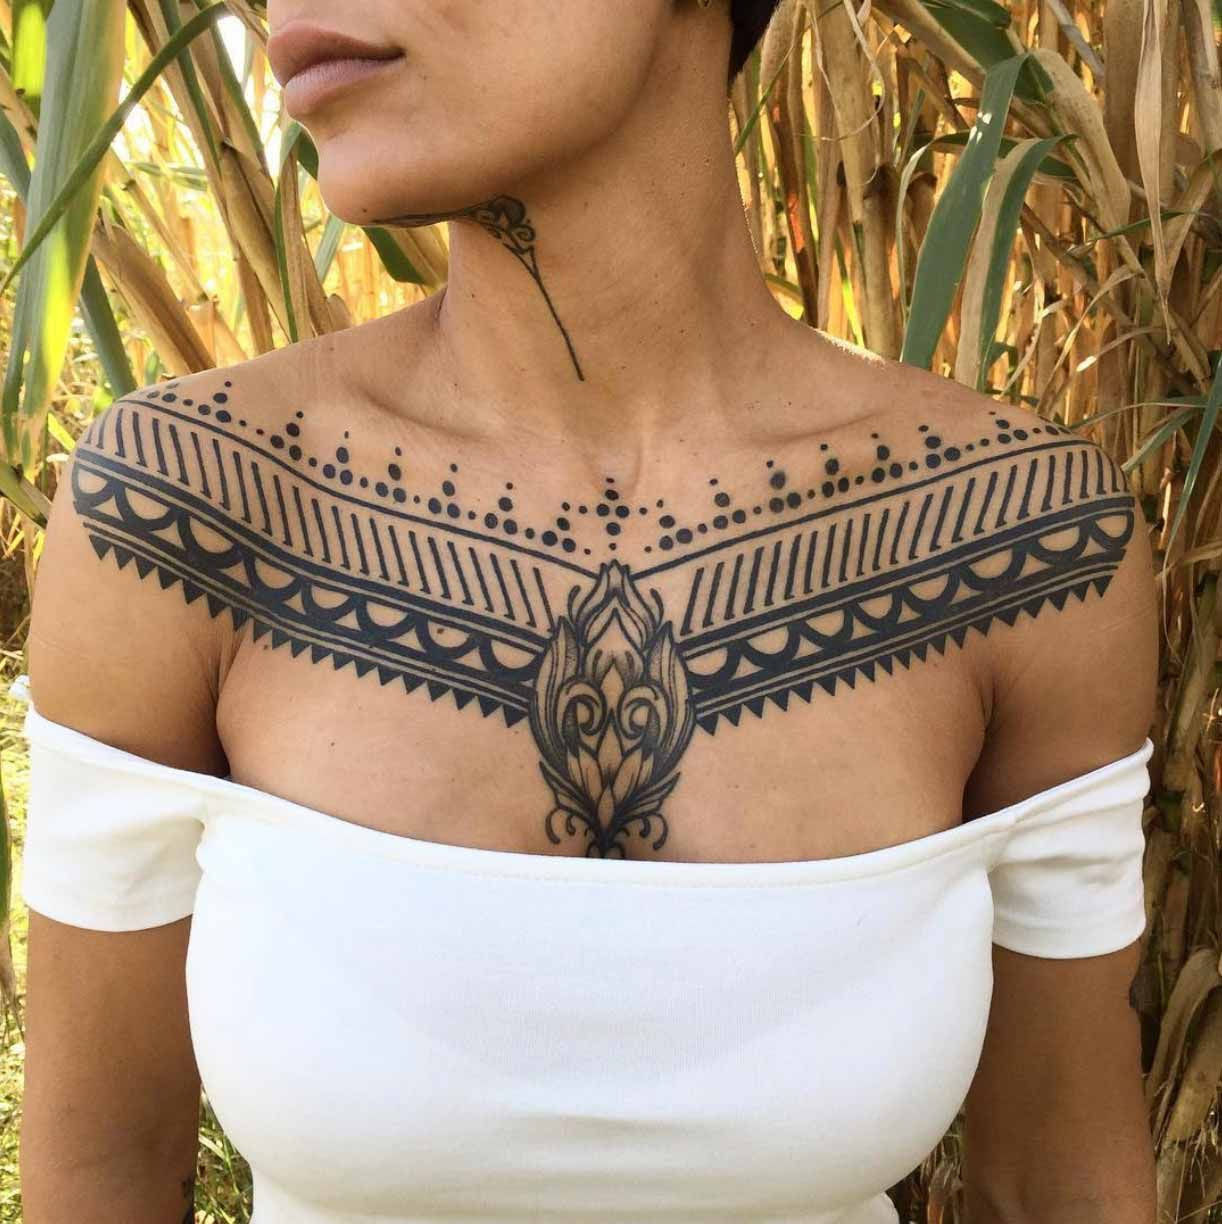 Chest Tattoo Designs for Girls